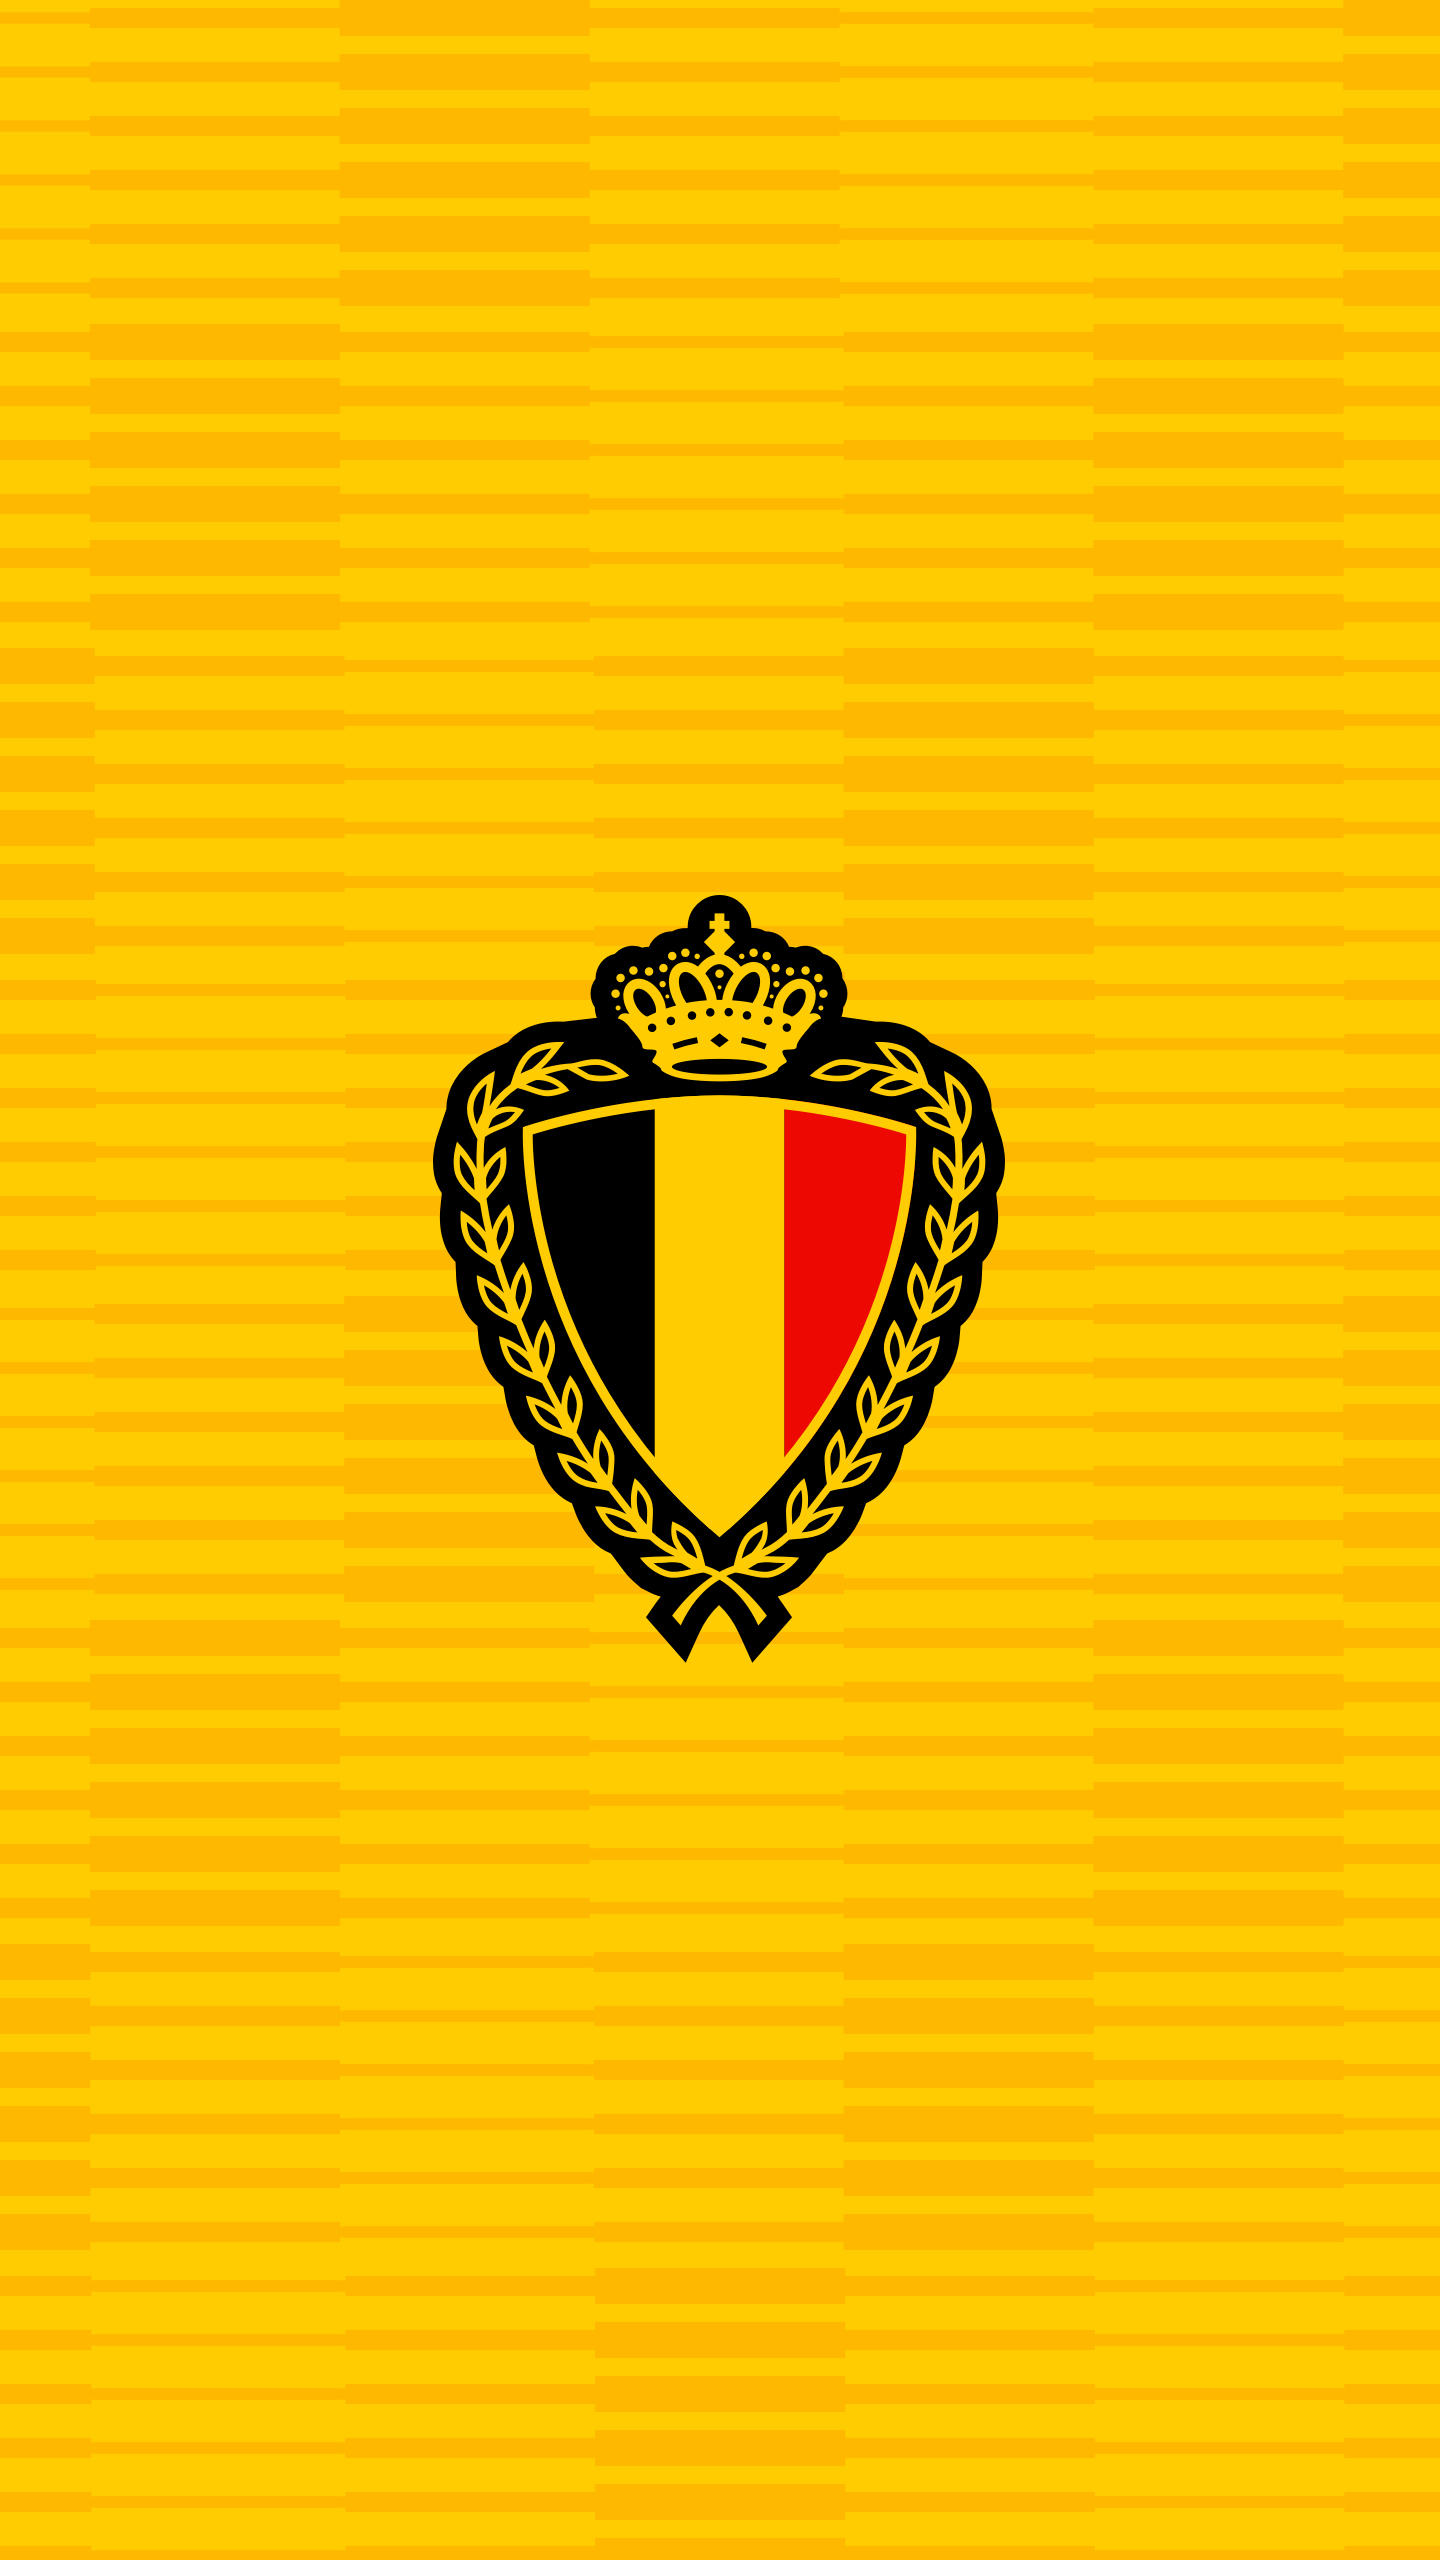 Belgian Red Devils 2018 World Cup wallpaper